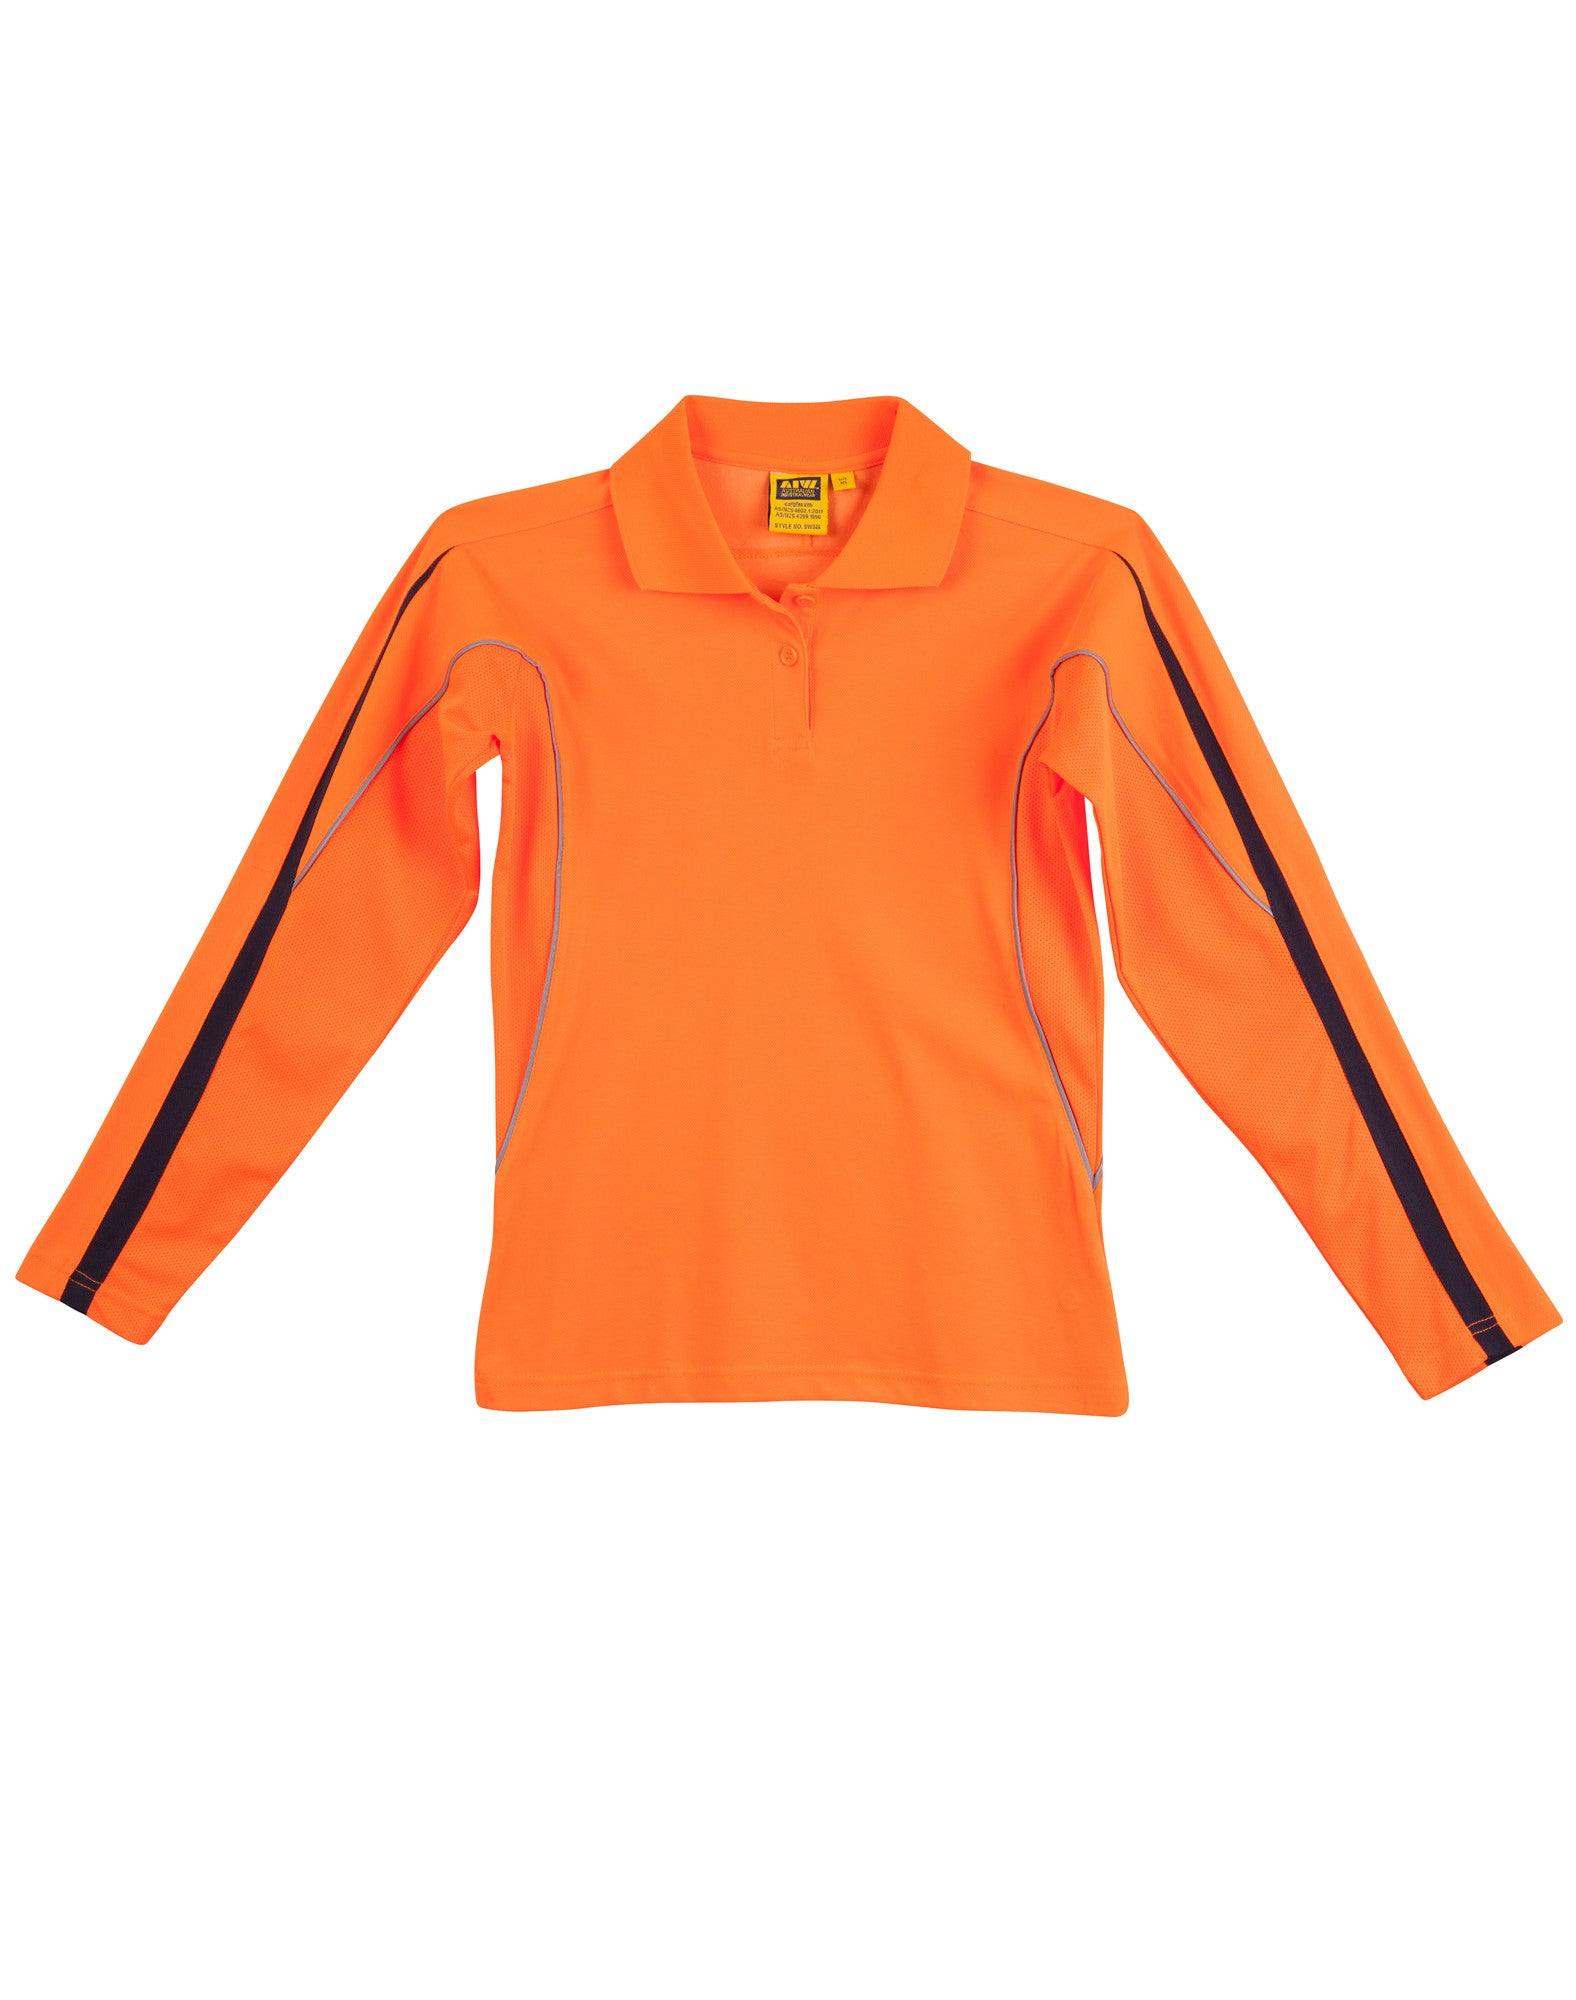 Winning Spirit Ladies' Truedry Hi-vis Legend Long Sleeve Polo With Reflective Piping (SW34A)